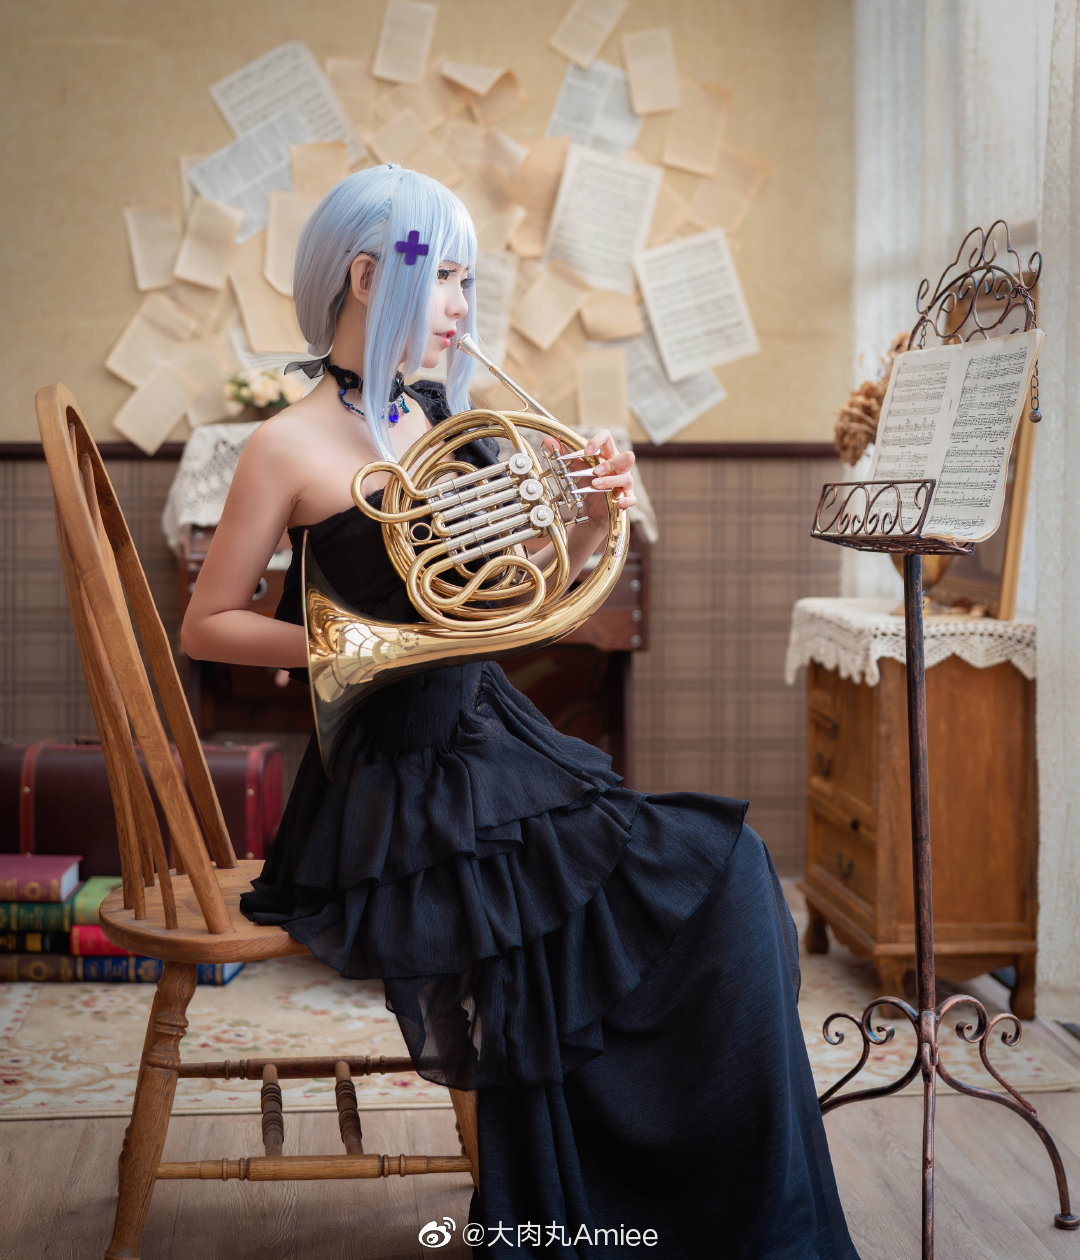 """The girl's previous title, """"The Flower of the Other Side of the HumanOid"""", hk416 Cosplay"""